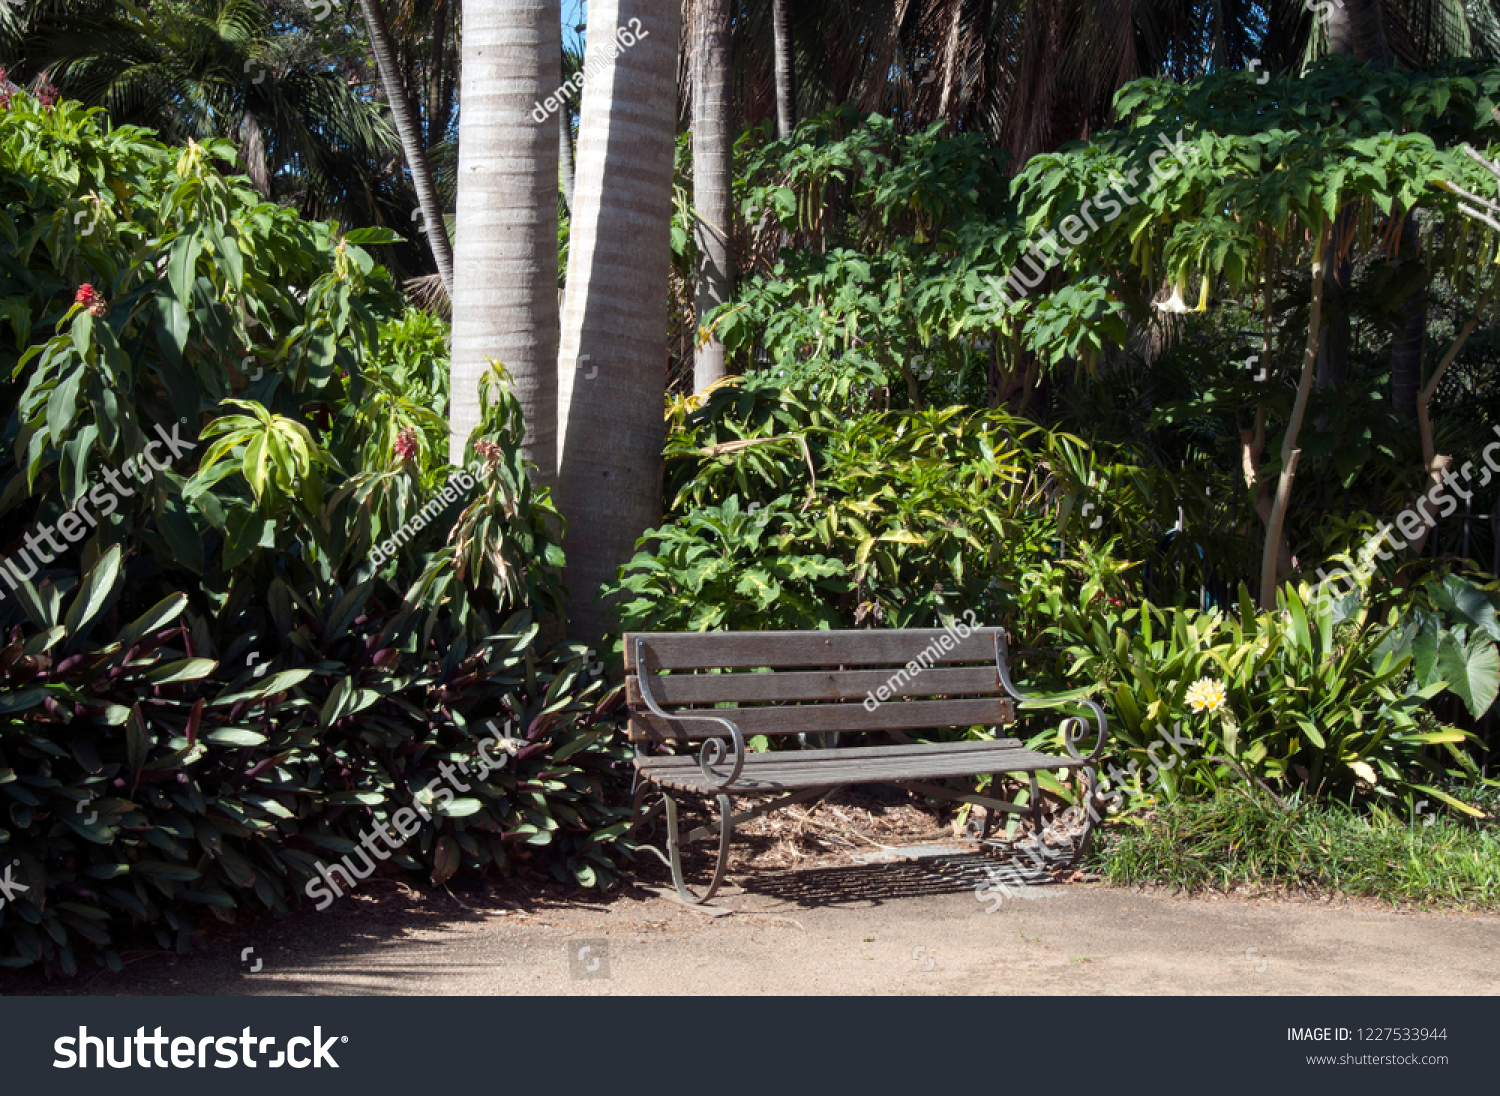 Garden Bench Australia Sydney Australia Wooden Seat Corner Garden Stock Photo Edit Now